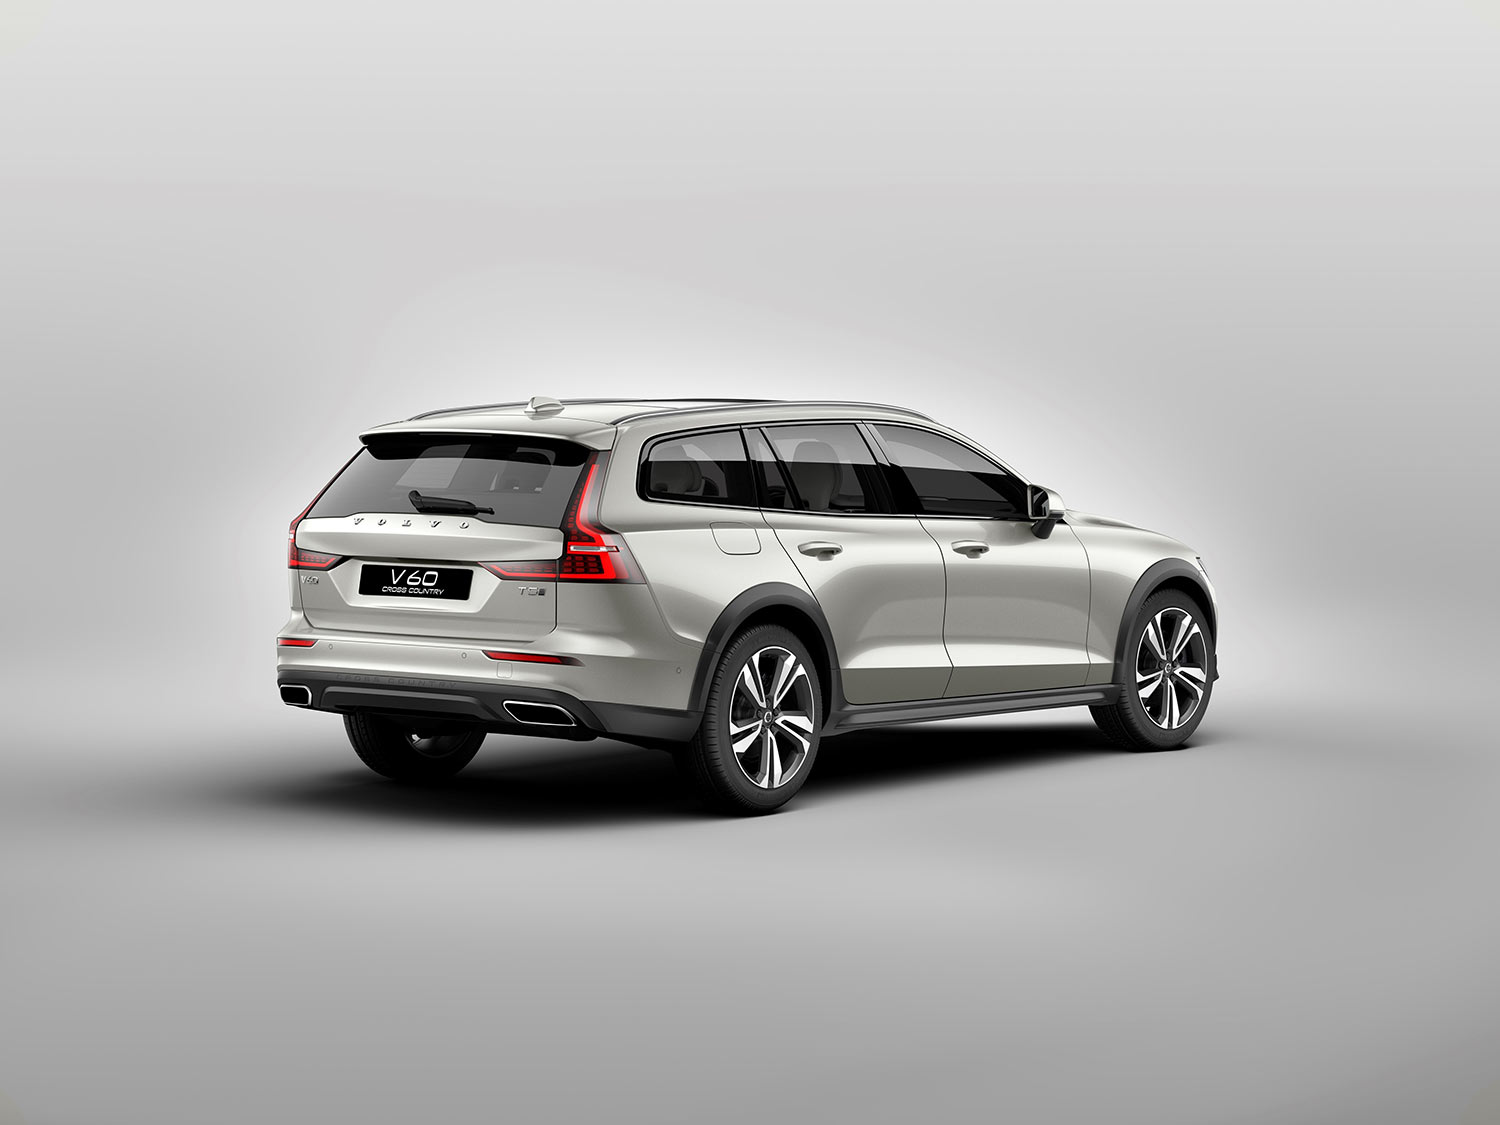 2020 Volvo V60 Cross Country Concept